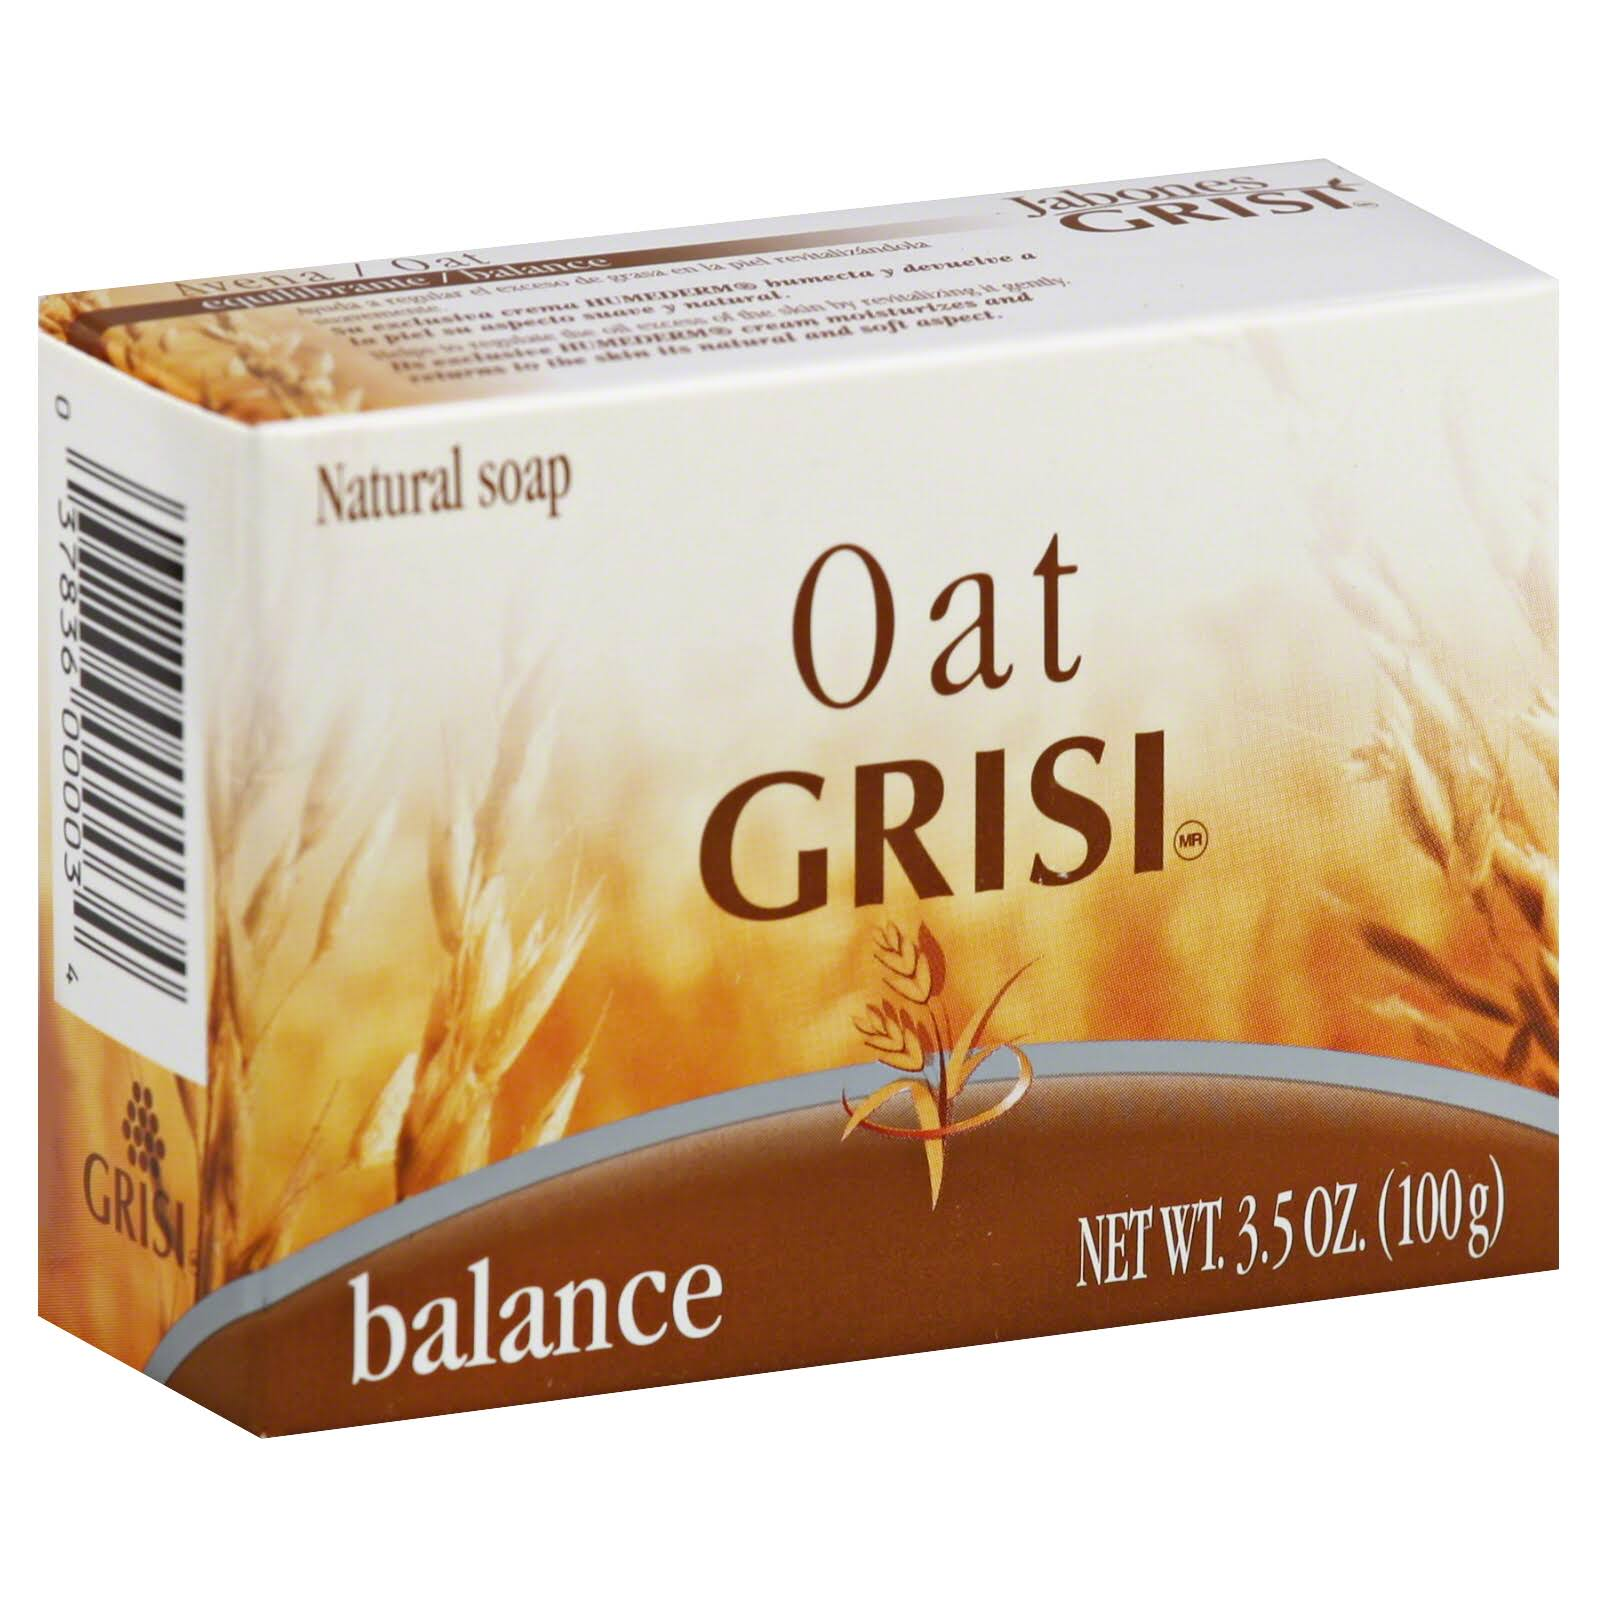 Grisi Oat Balancer with Humederm Bar Soap - 3.5oz